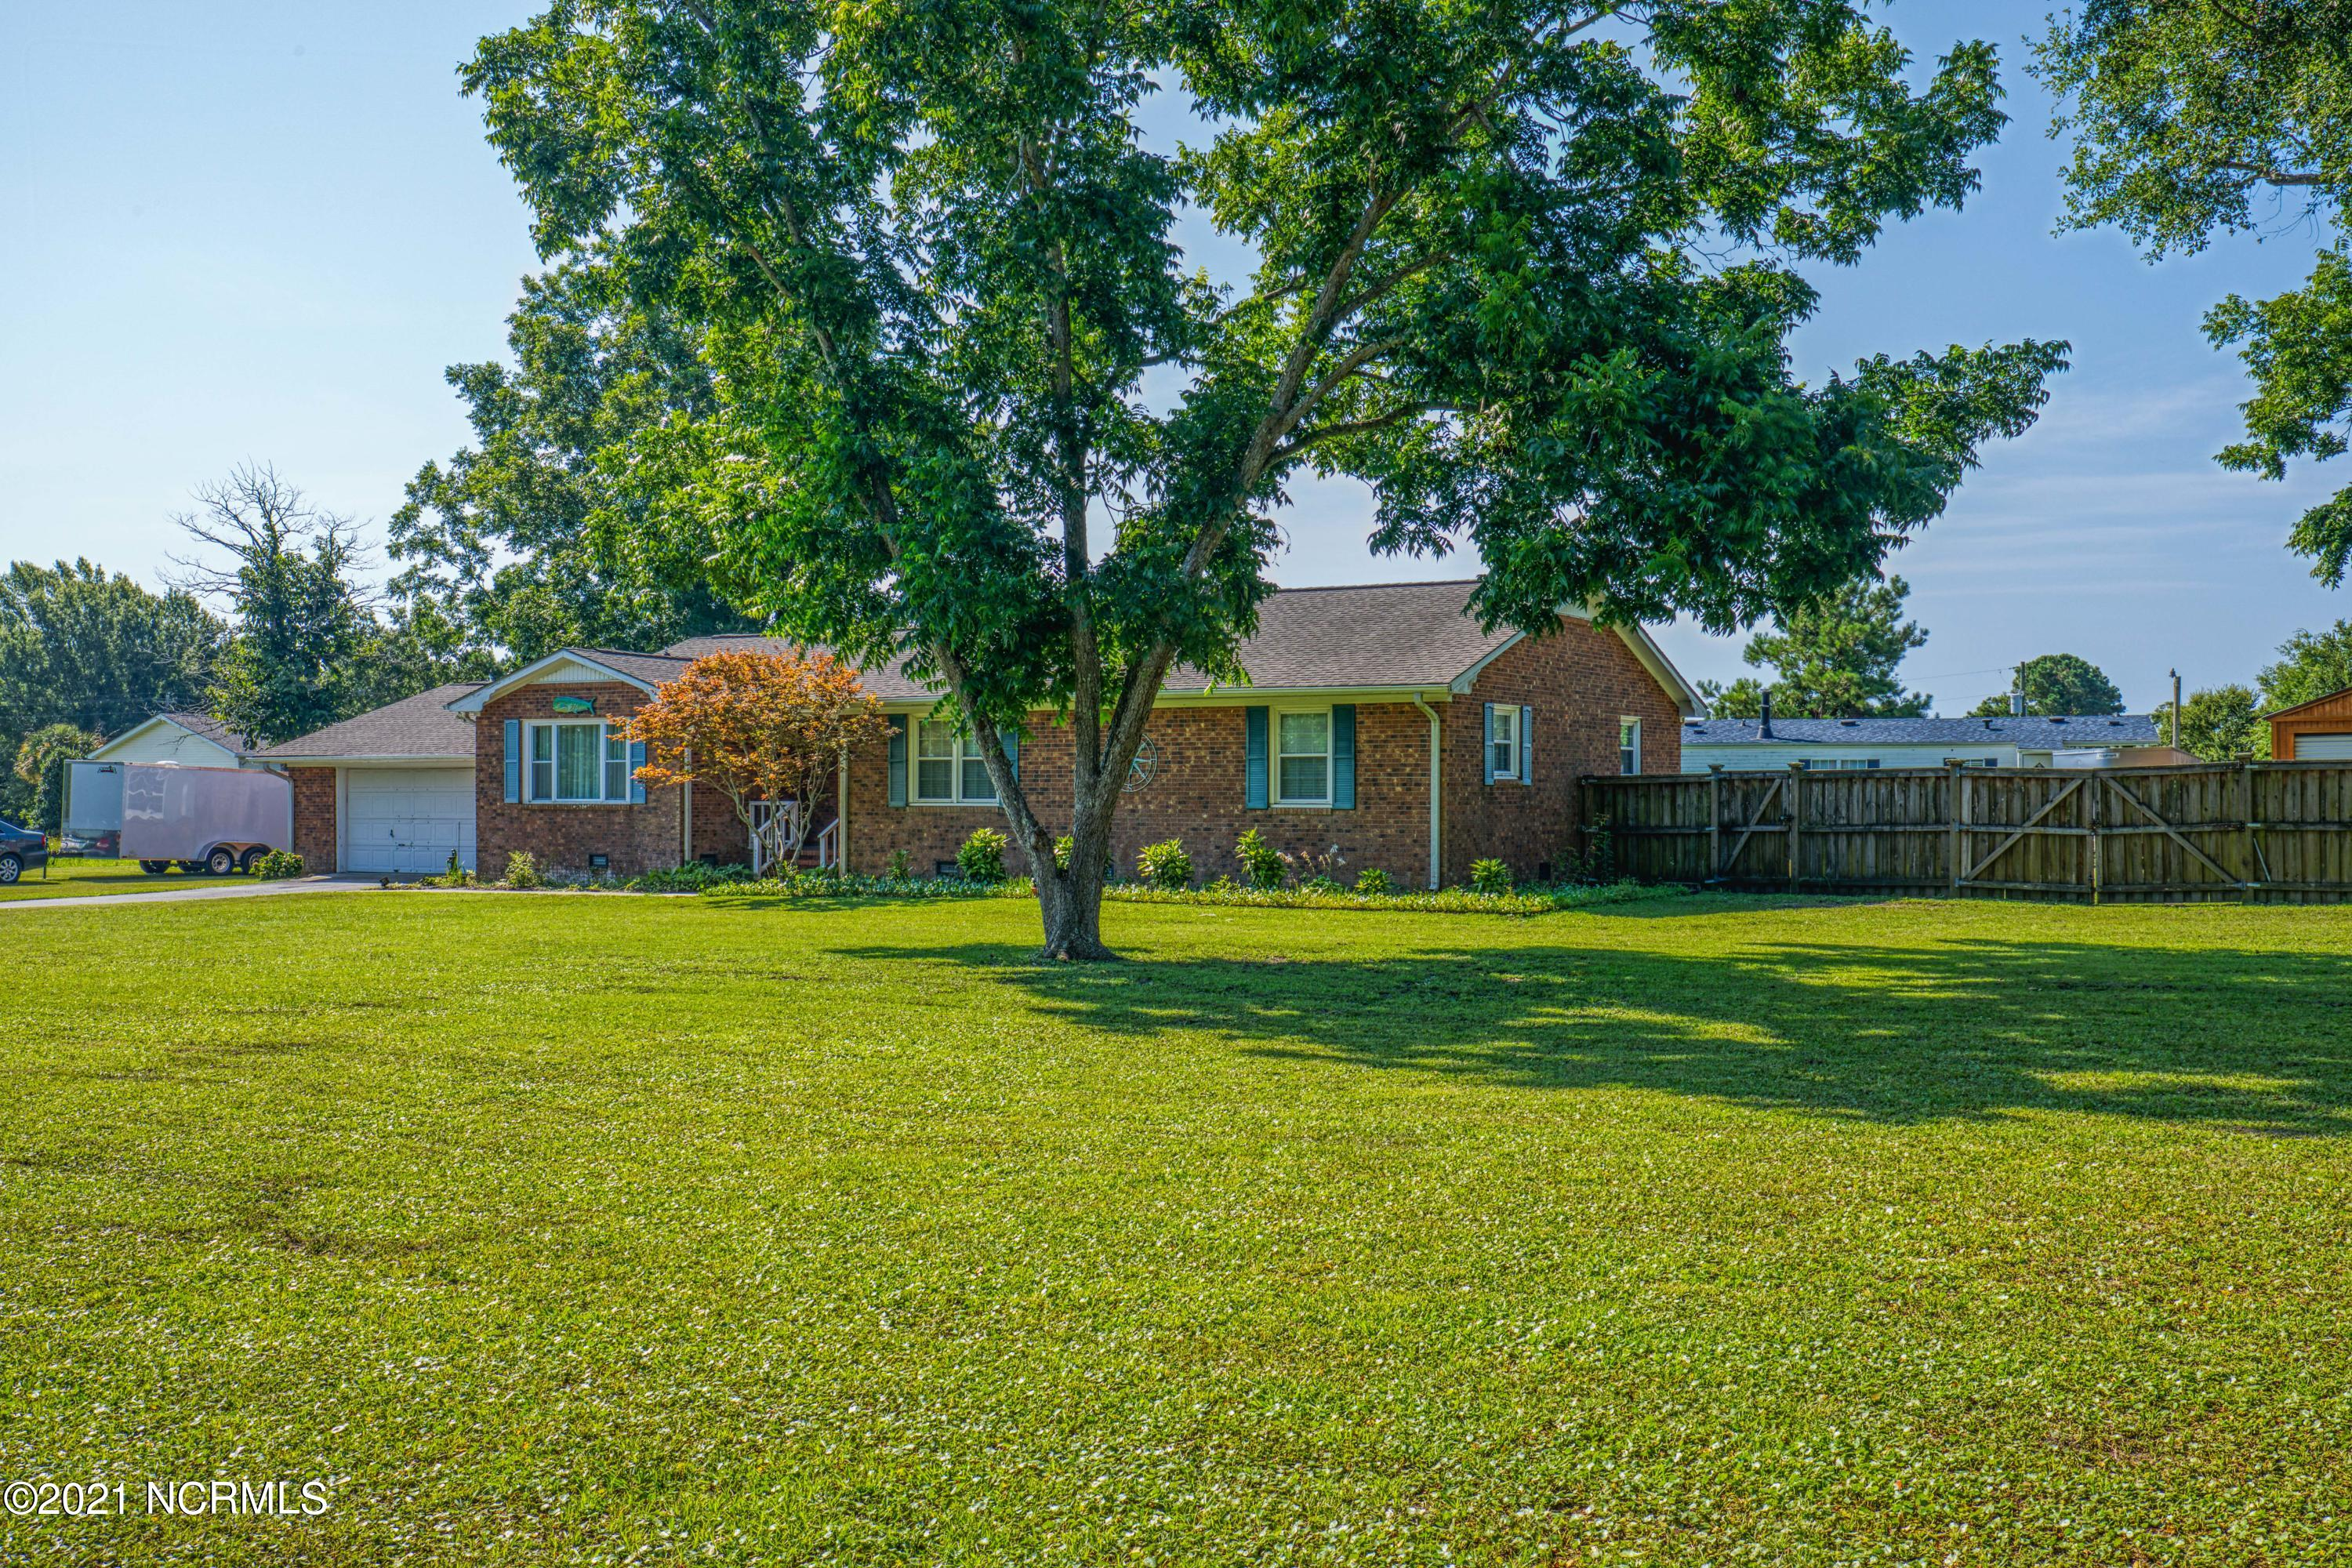 576 Peru Road, Sneads Ferry, North Carolina 28460, 3 Bedrooms Bedrooms, 6 Rooms Rooms,2 BathroomsBathrooms,Single family residence,For sale,Peru,100285939